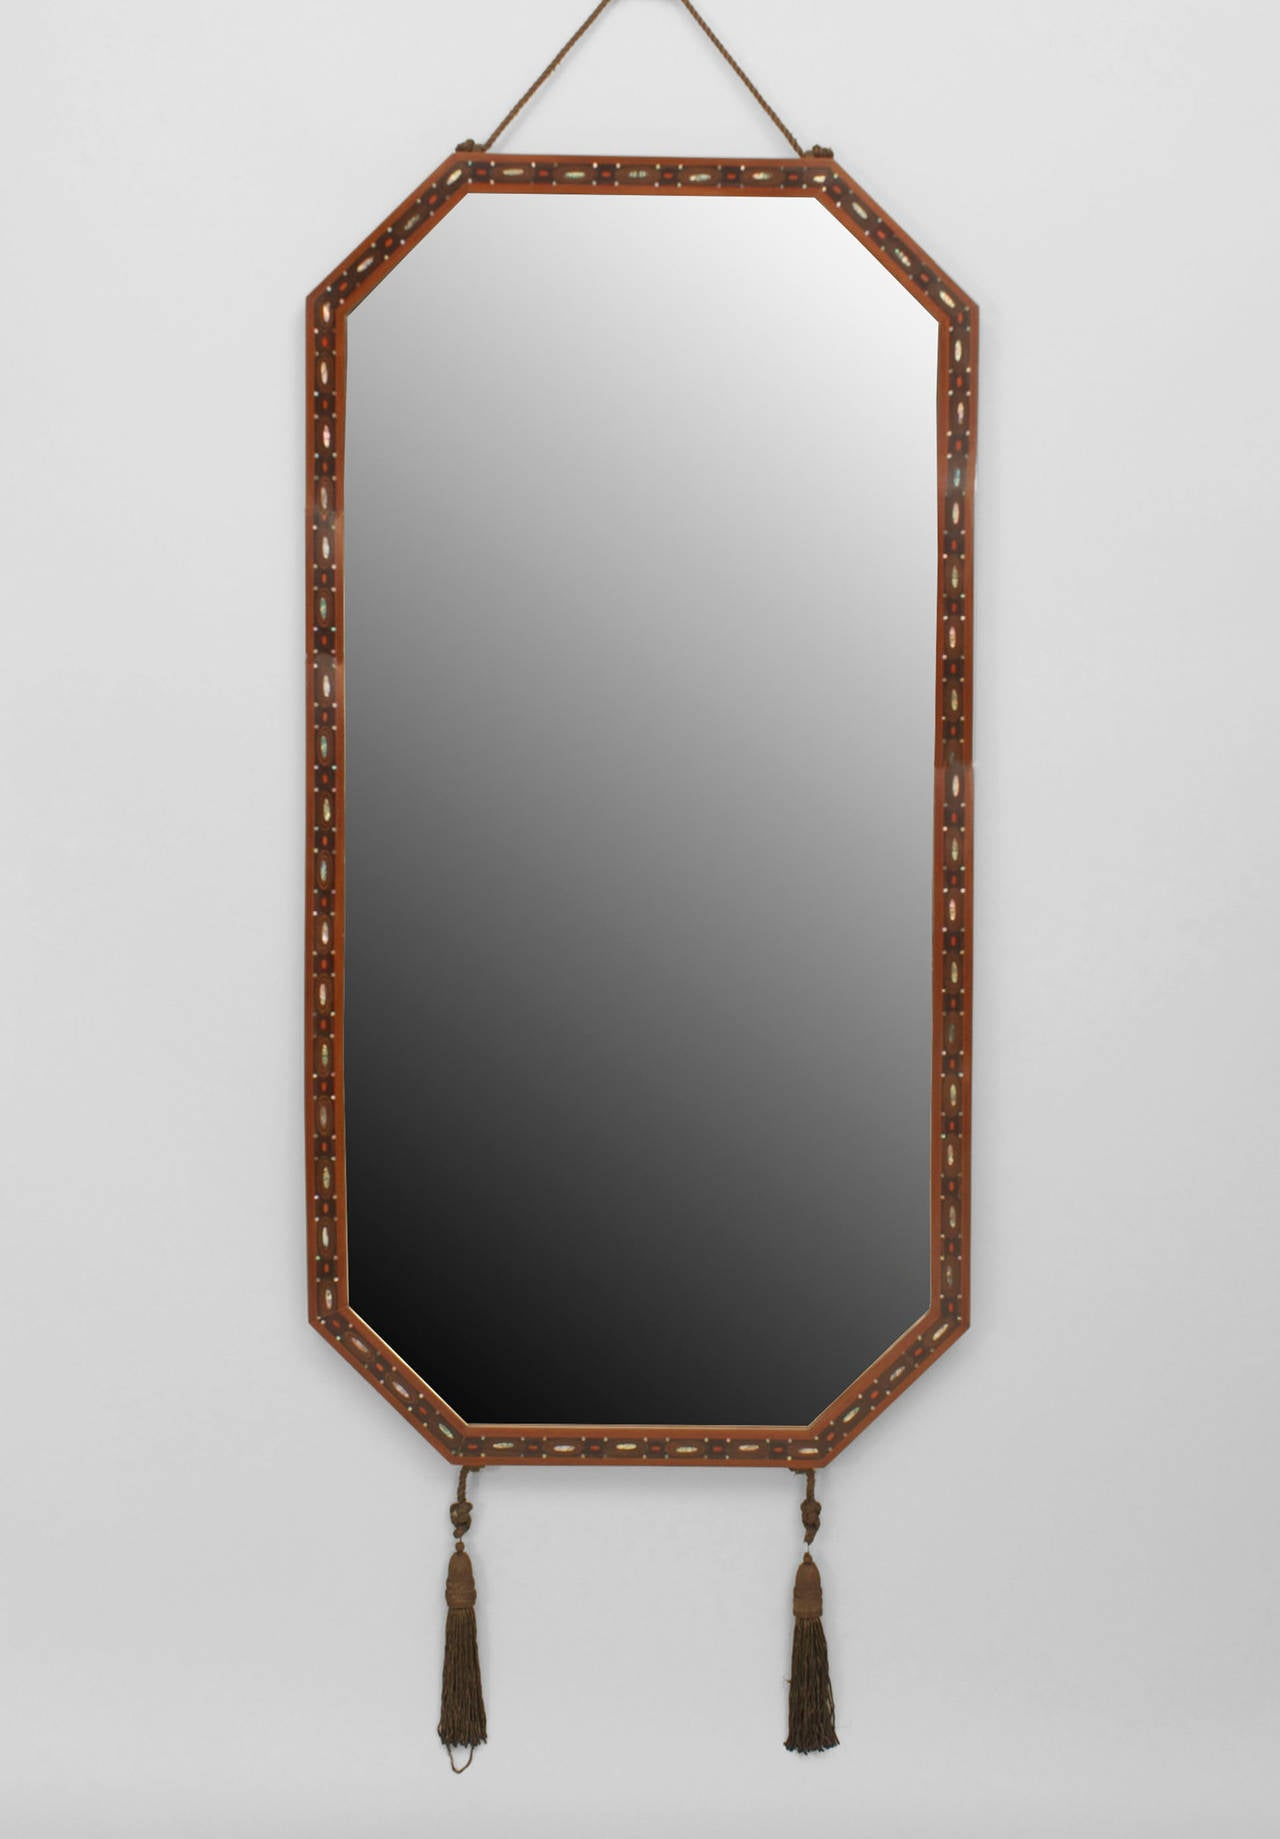 French Art Deco mahogany horizontal 8 sided narrow wall mirror with an inlaid